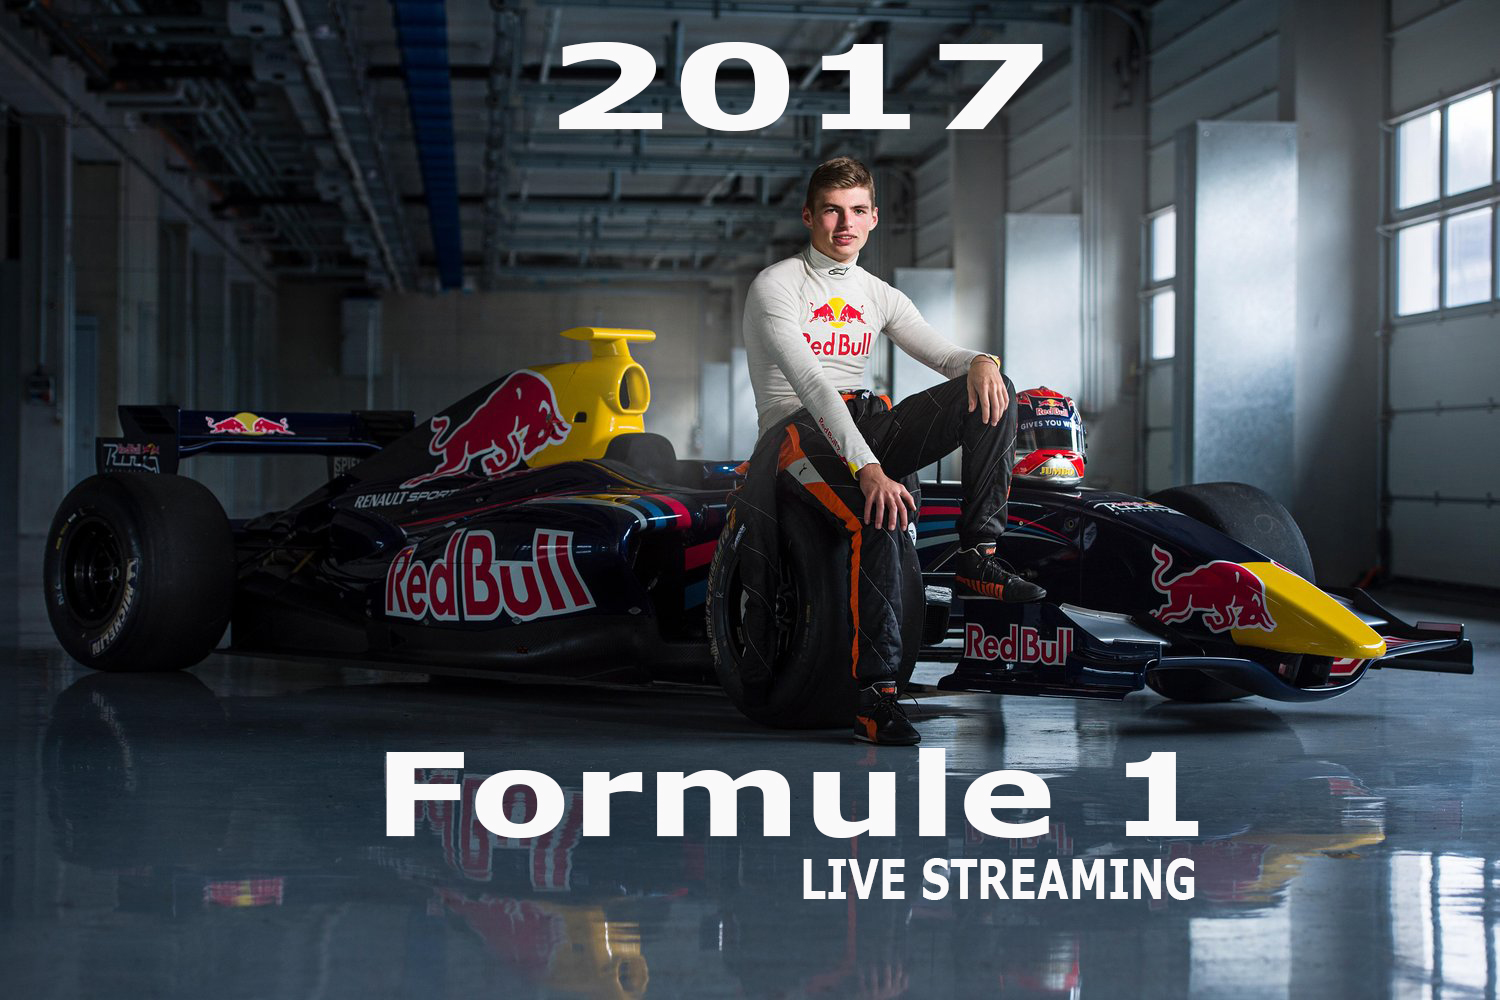 formule 1 live stream in 2017 max verstappen live. Black Bedroom Furniture Sets. Home Design Ideas